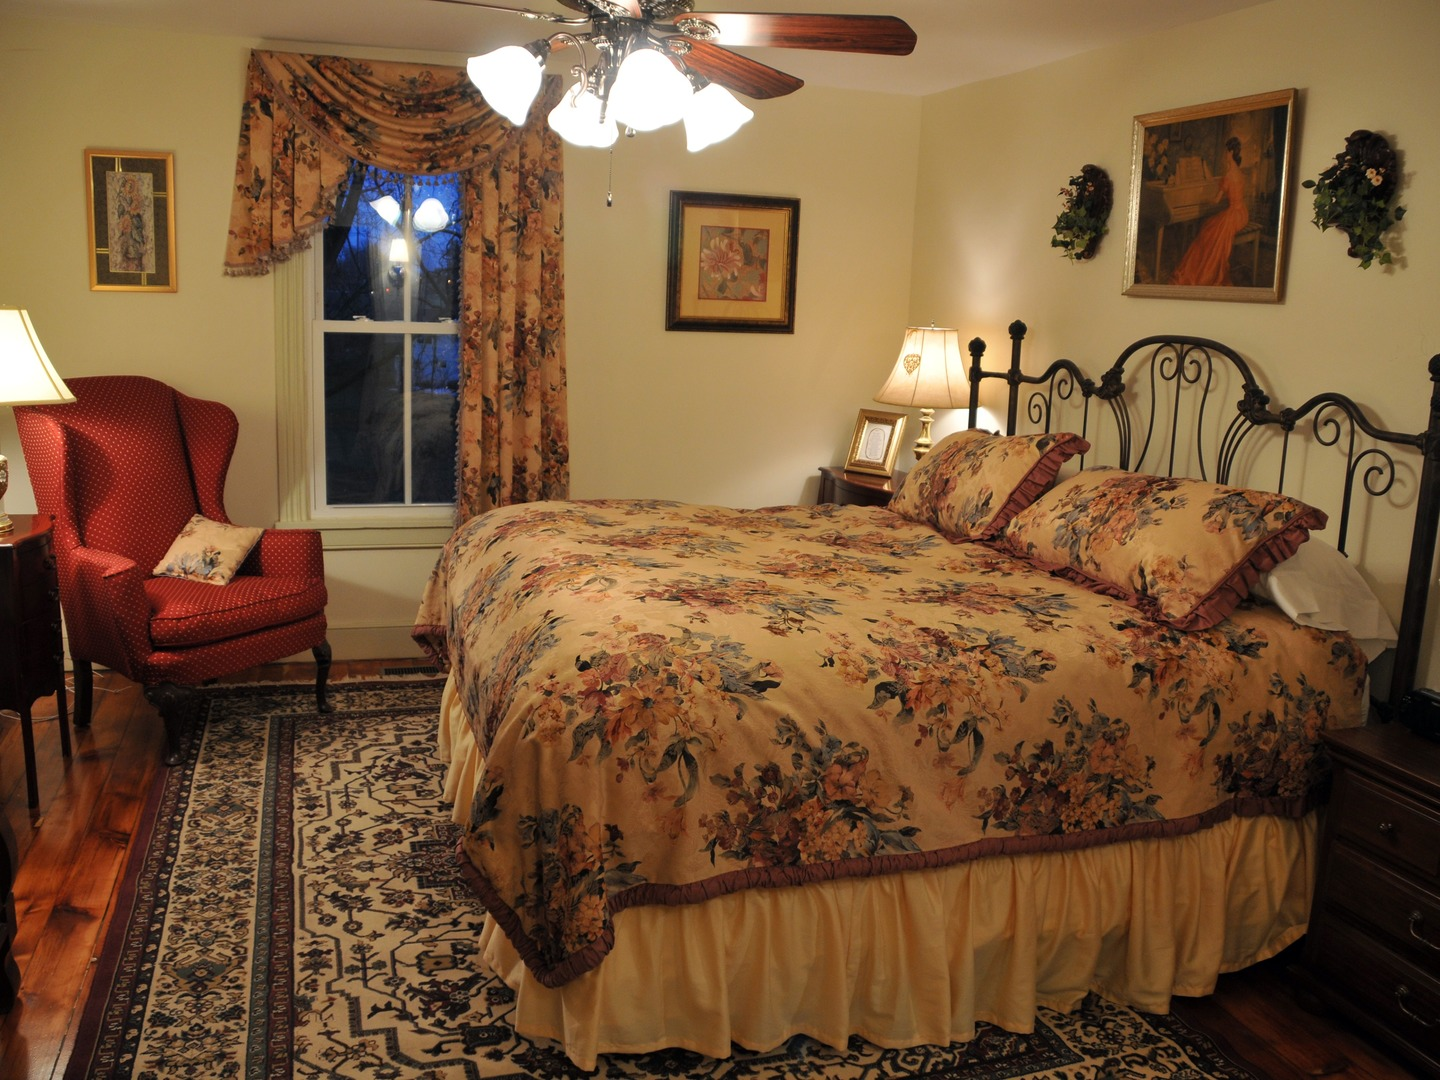 Middletown Bed and Breakfast